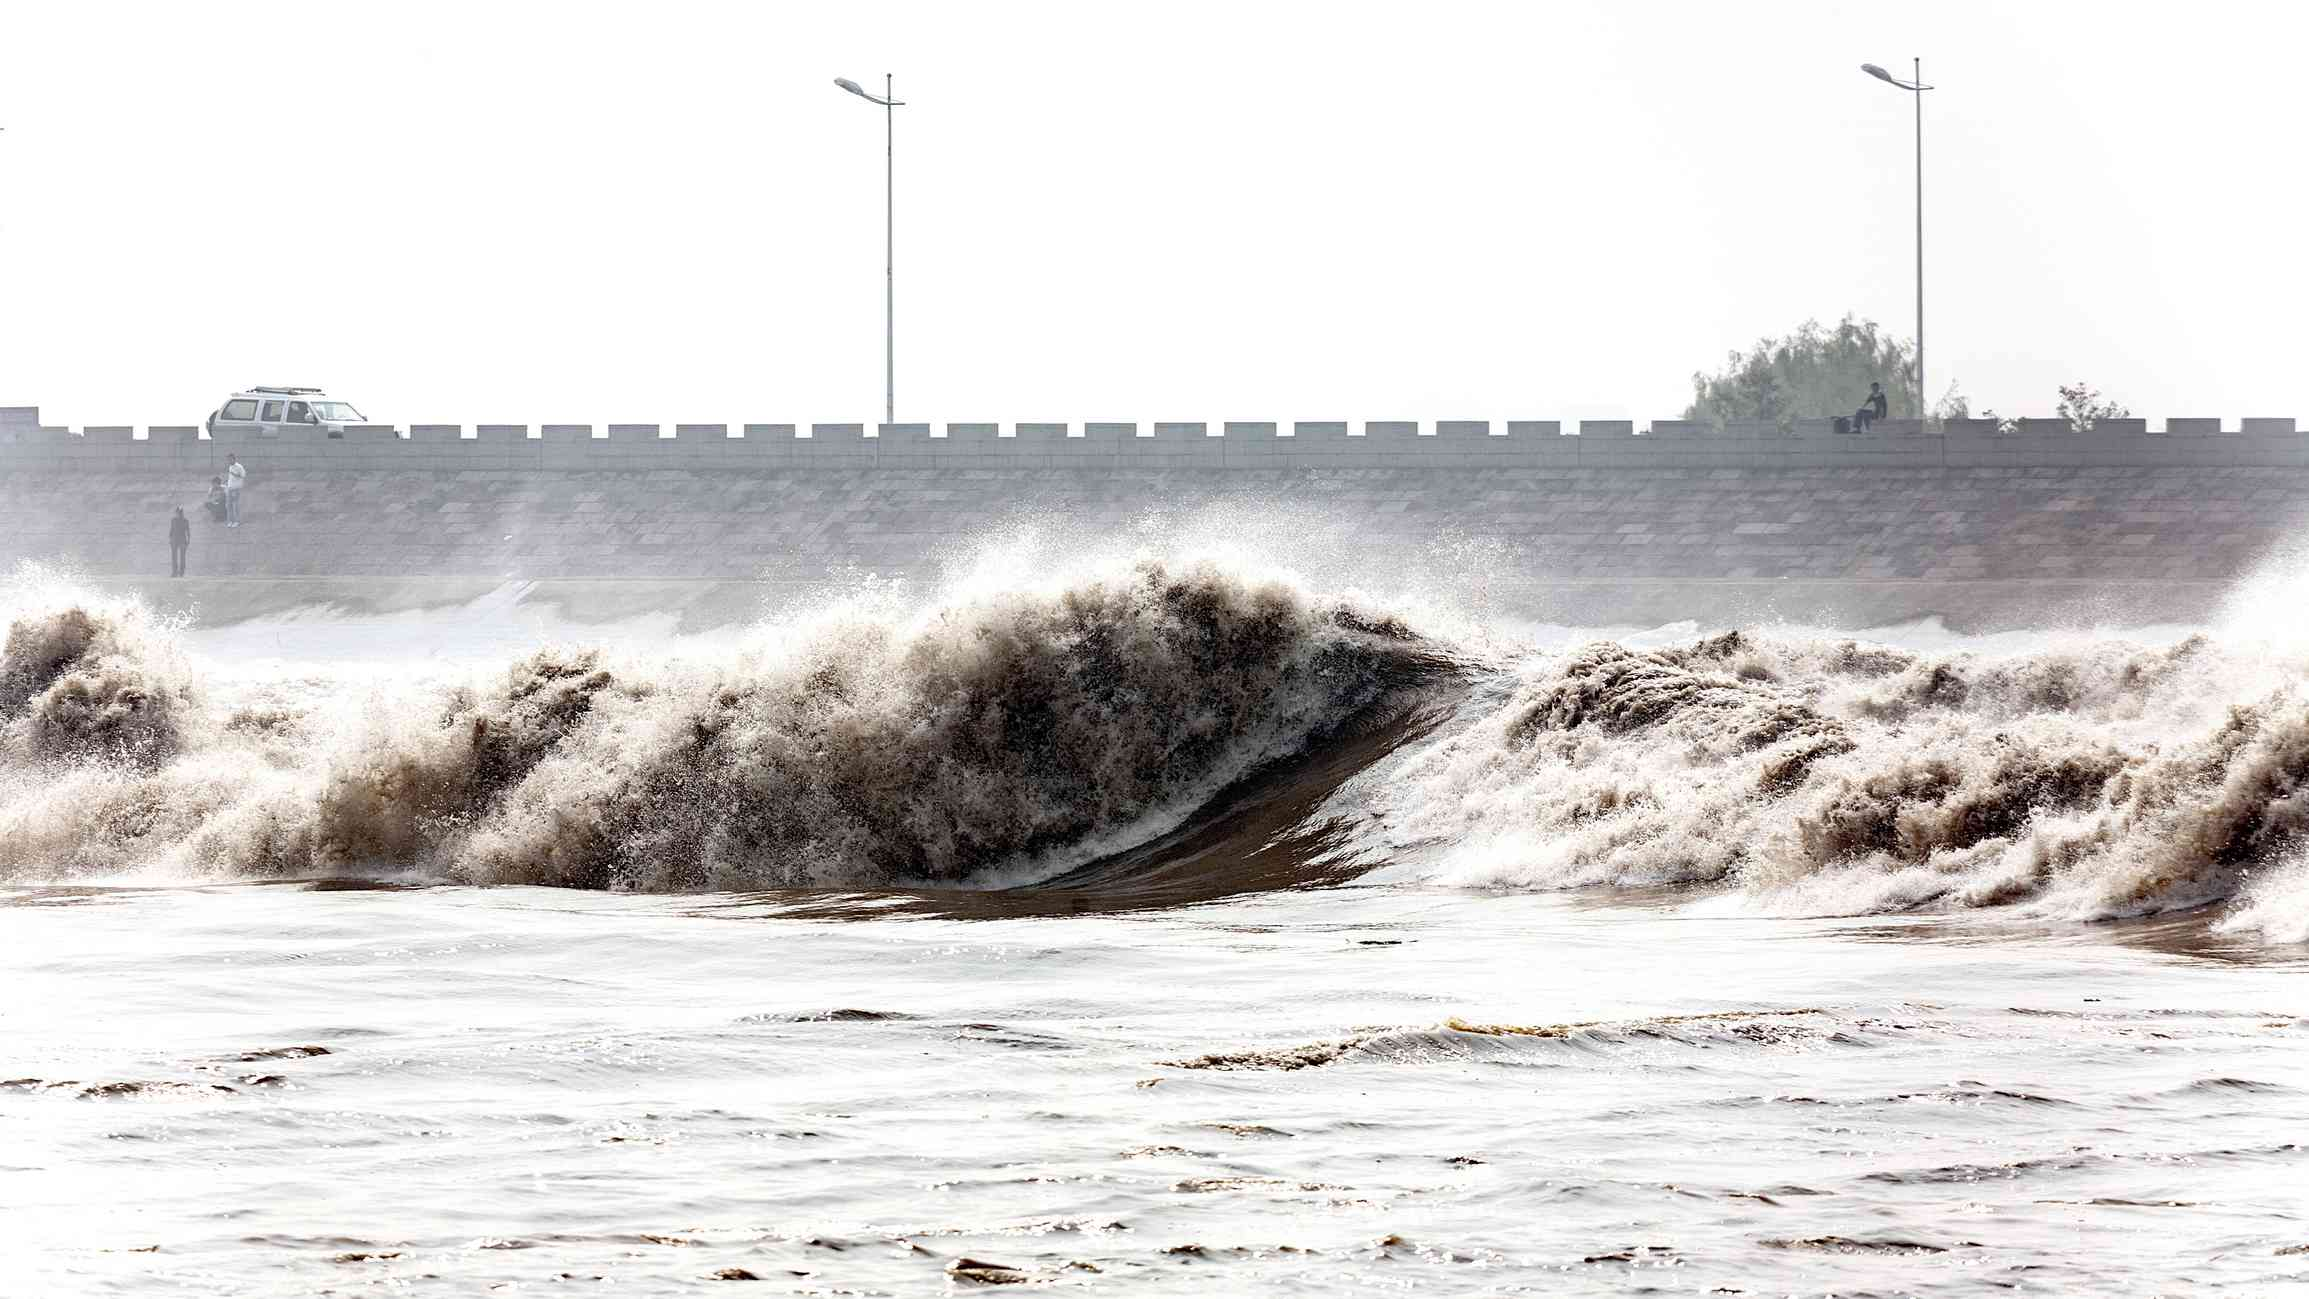 waves crashing during the Qiantang River tidal bore with a brick bridge in the distance under a foggy sky